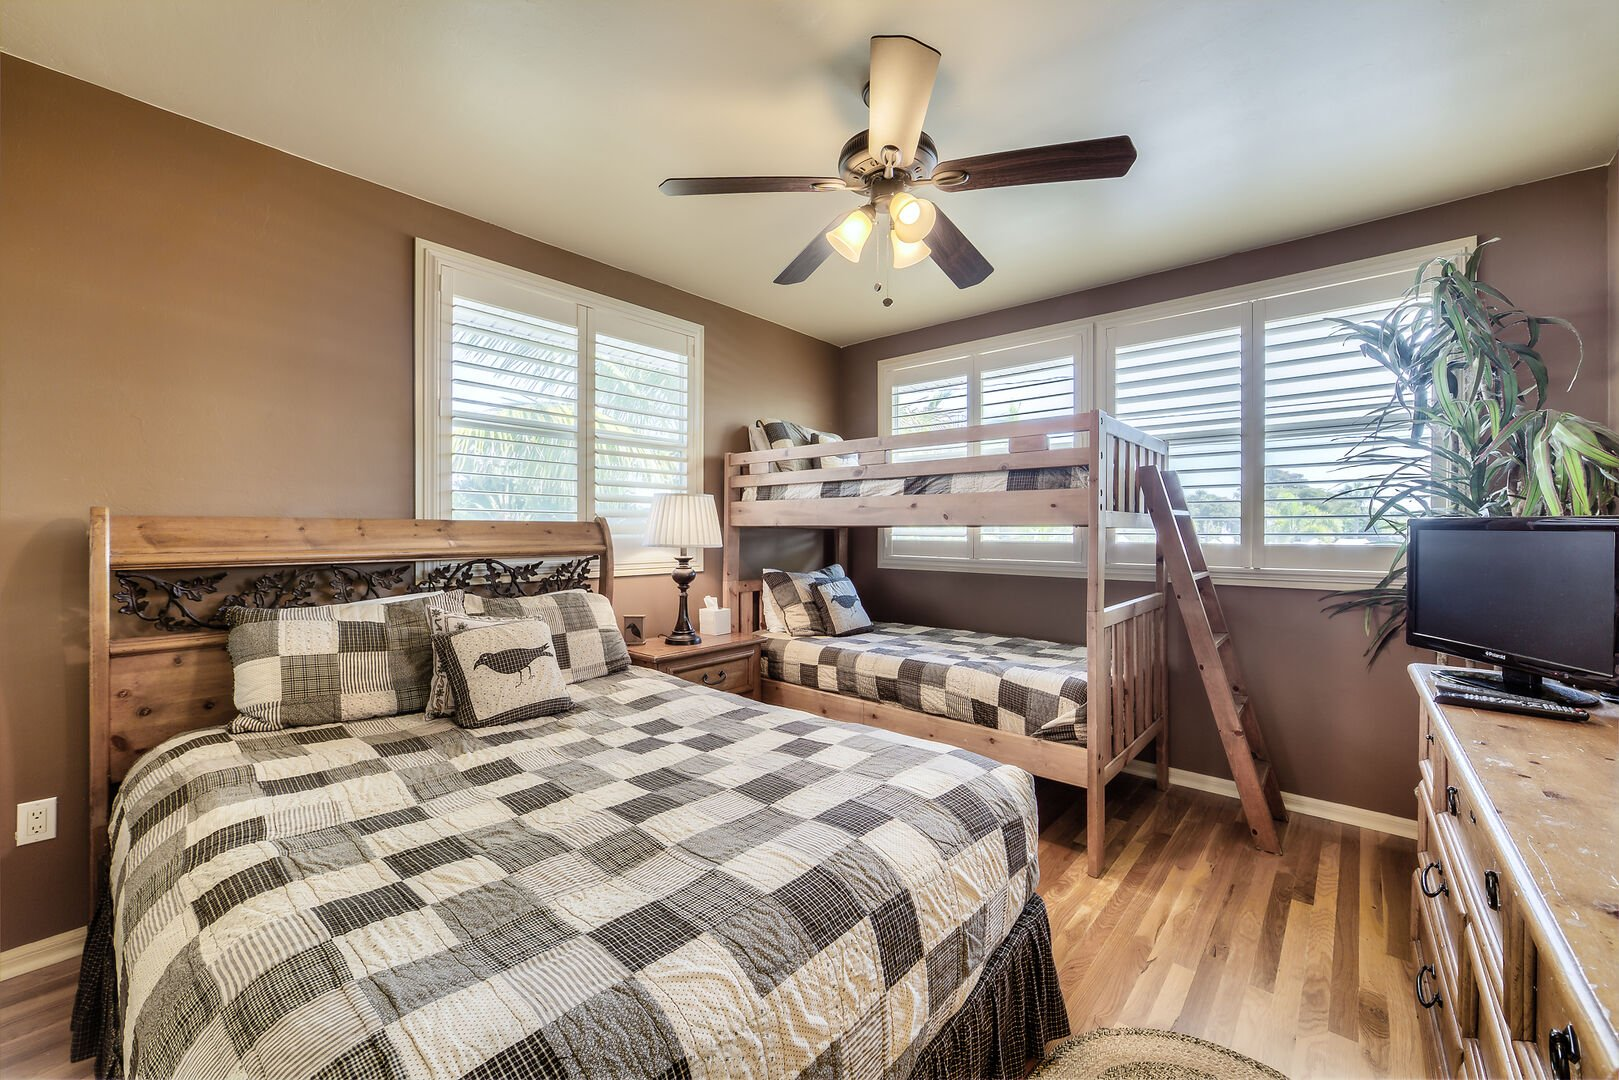 Bedroom with Bed and Bunk Beds Fort Myers Beach Rental